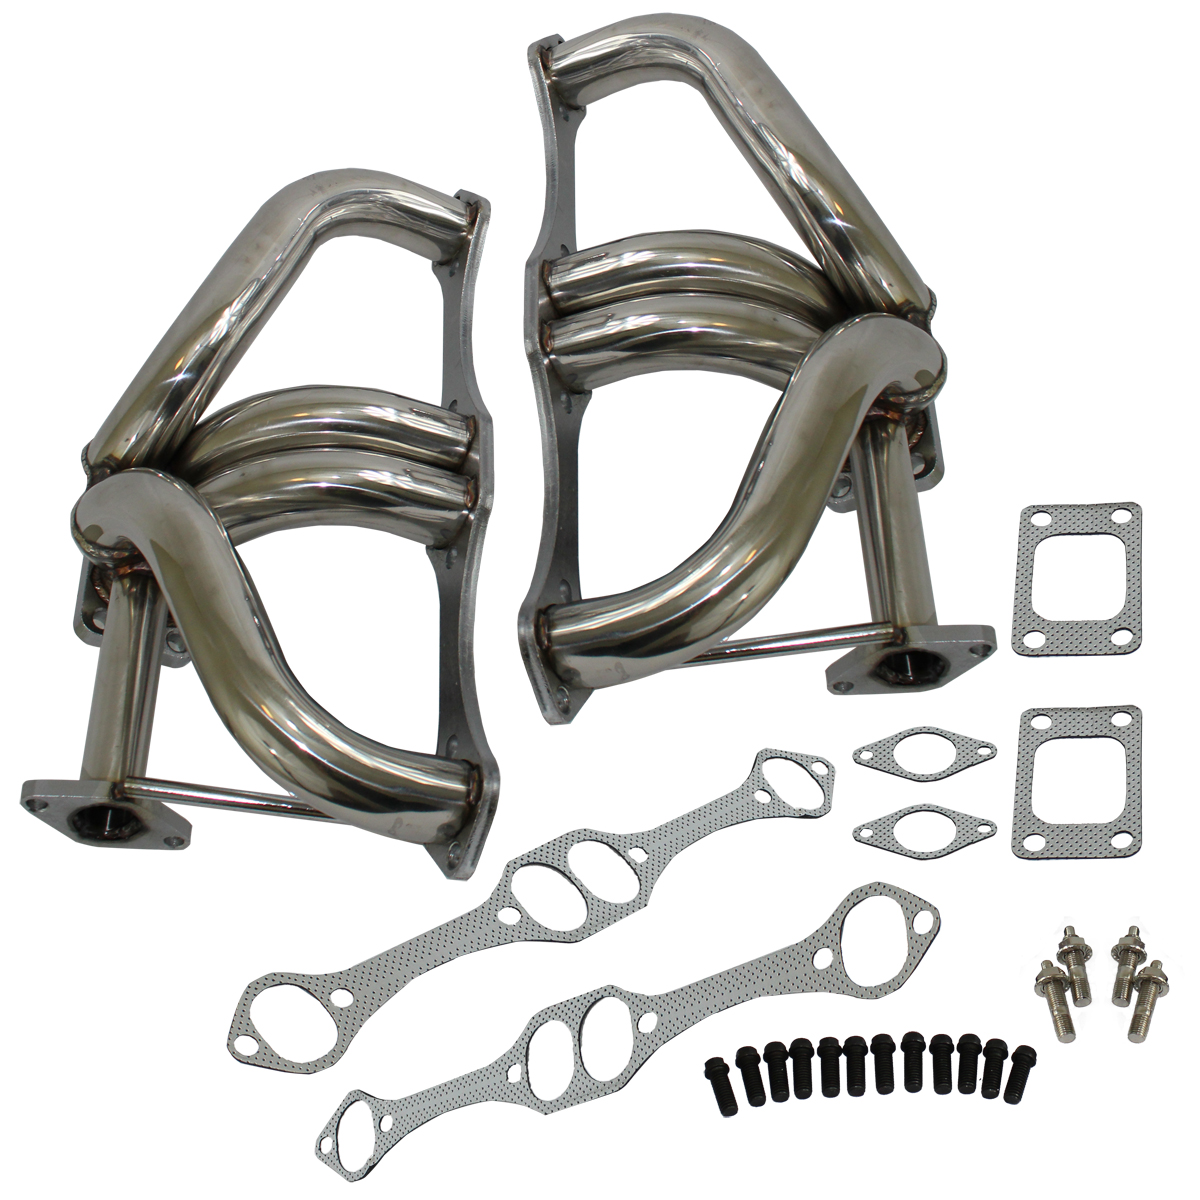 T3 T4 Turbo Exhaust Header Manifold For 66-96 GM SBC Chevy